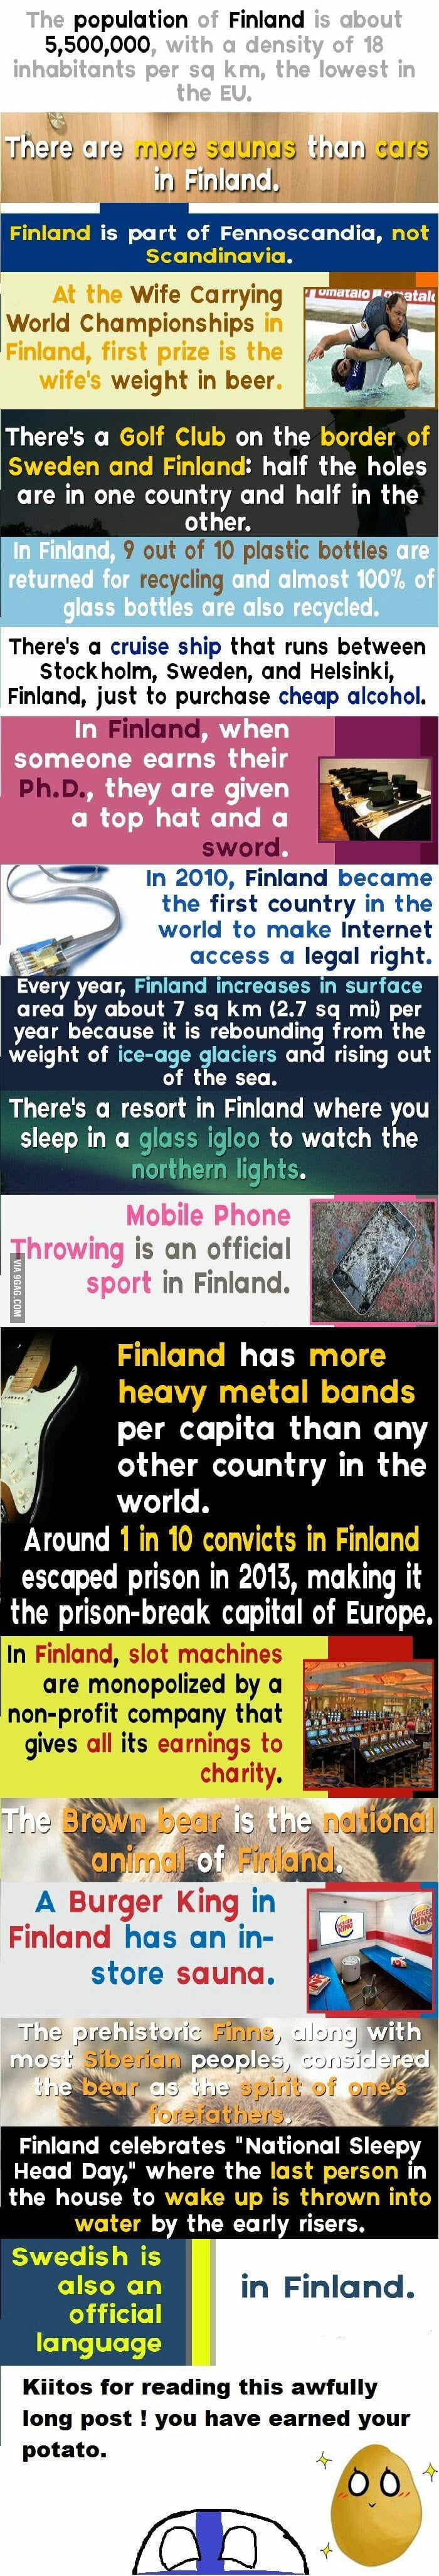 Finland just turned 100 years today so